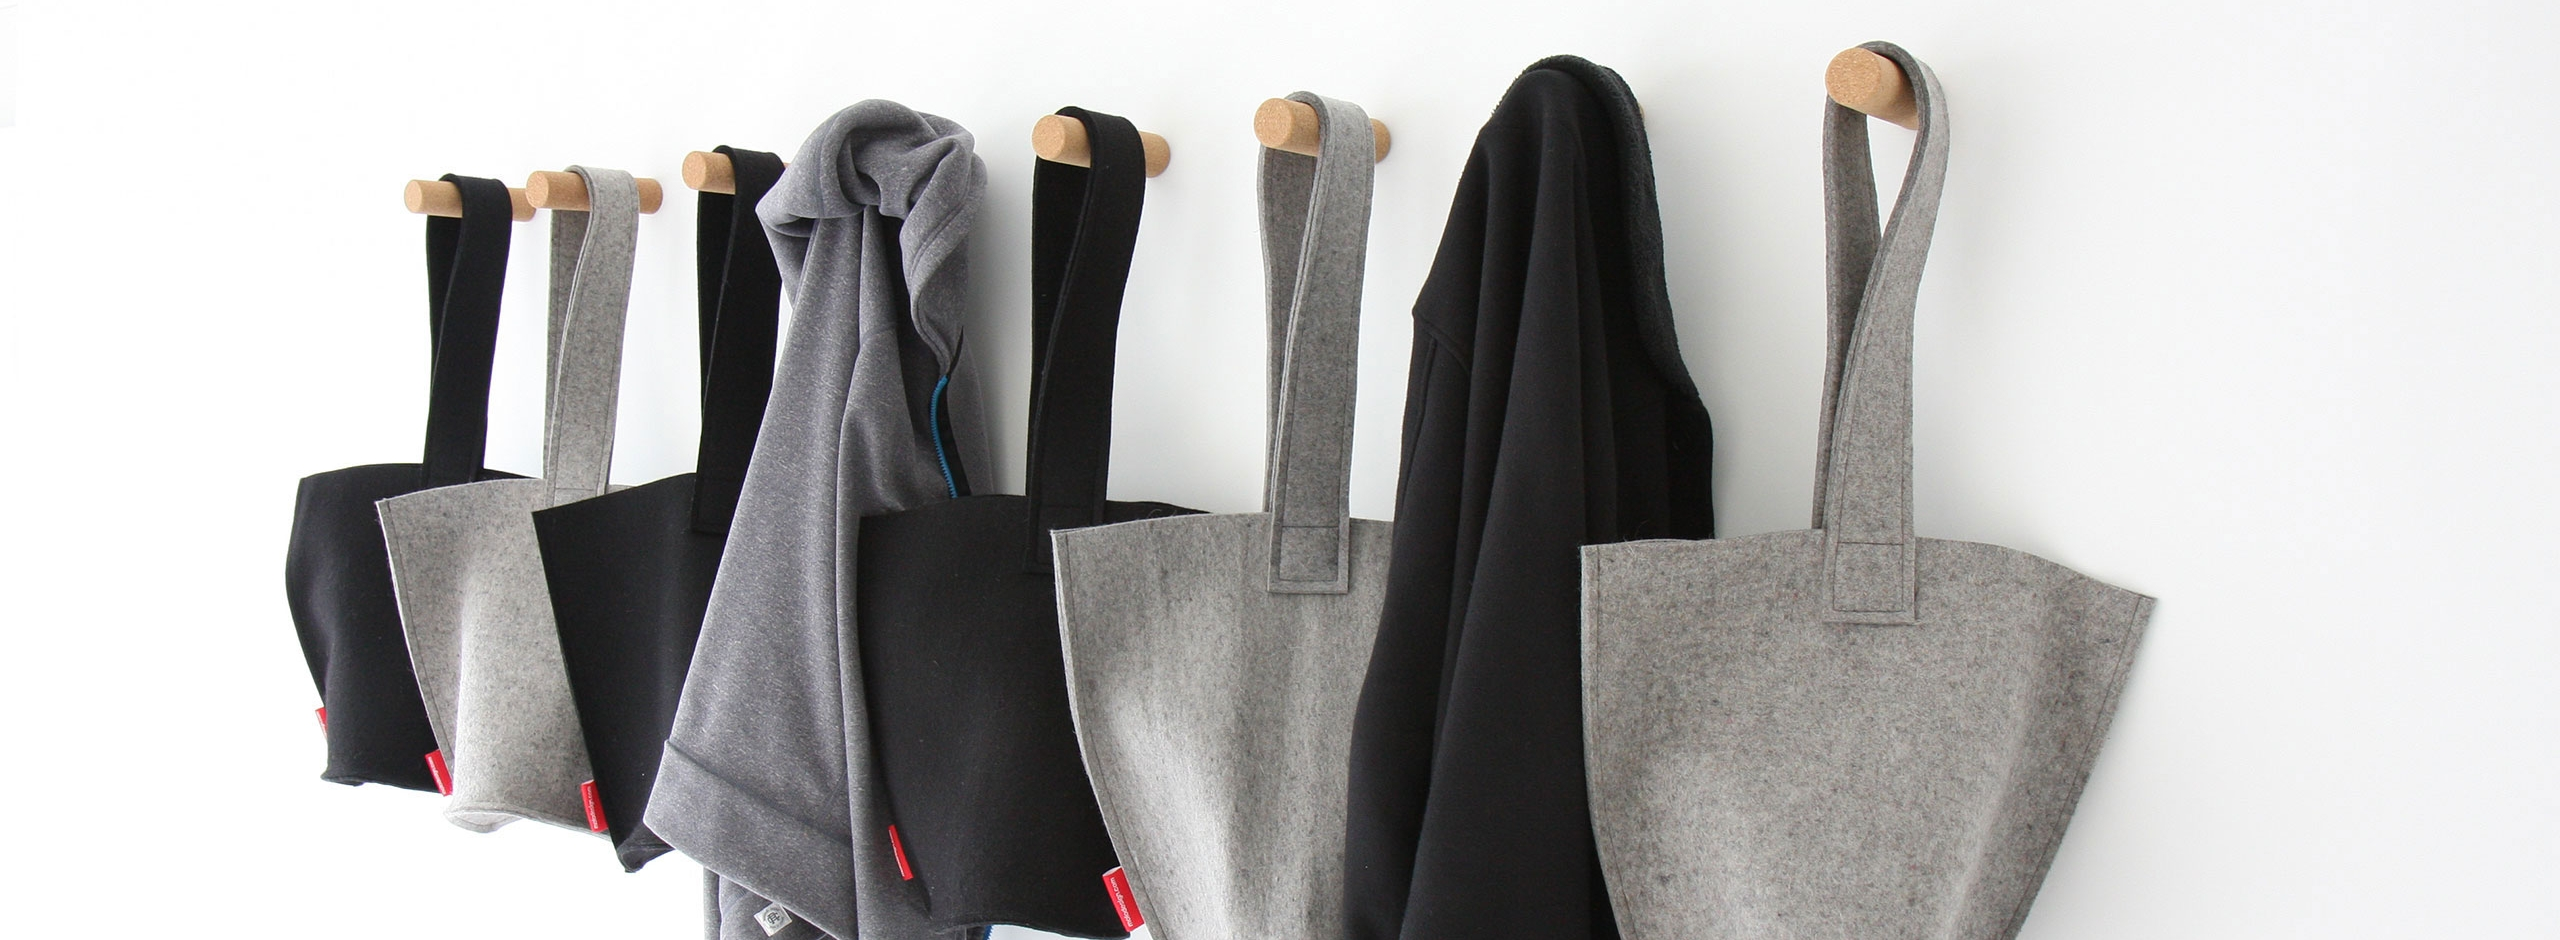 sweaters and hobo bag hangs from cork peg